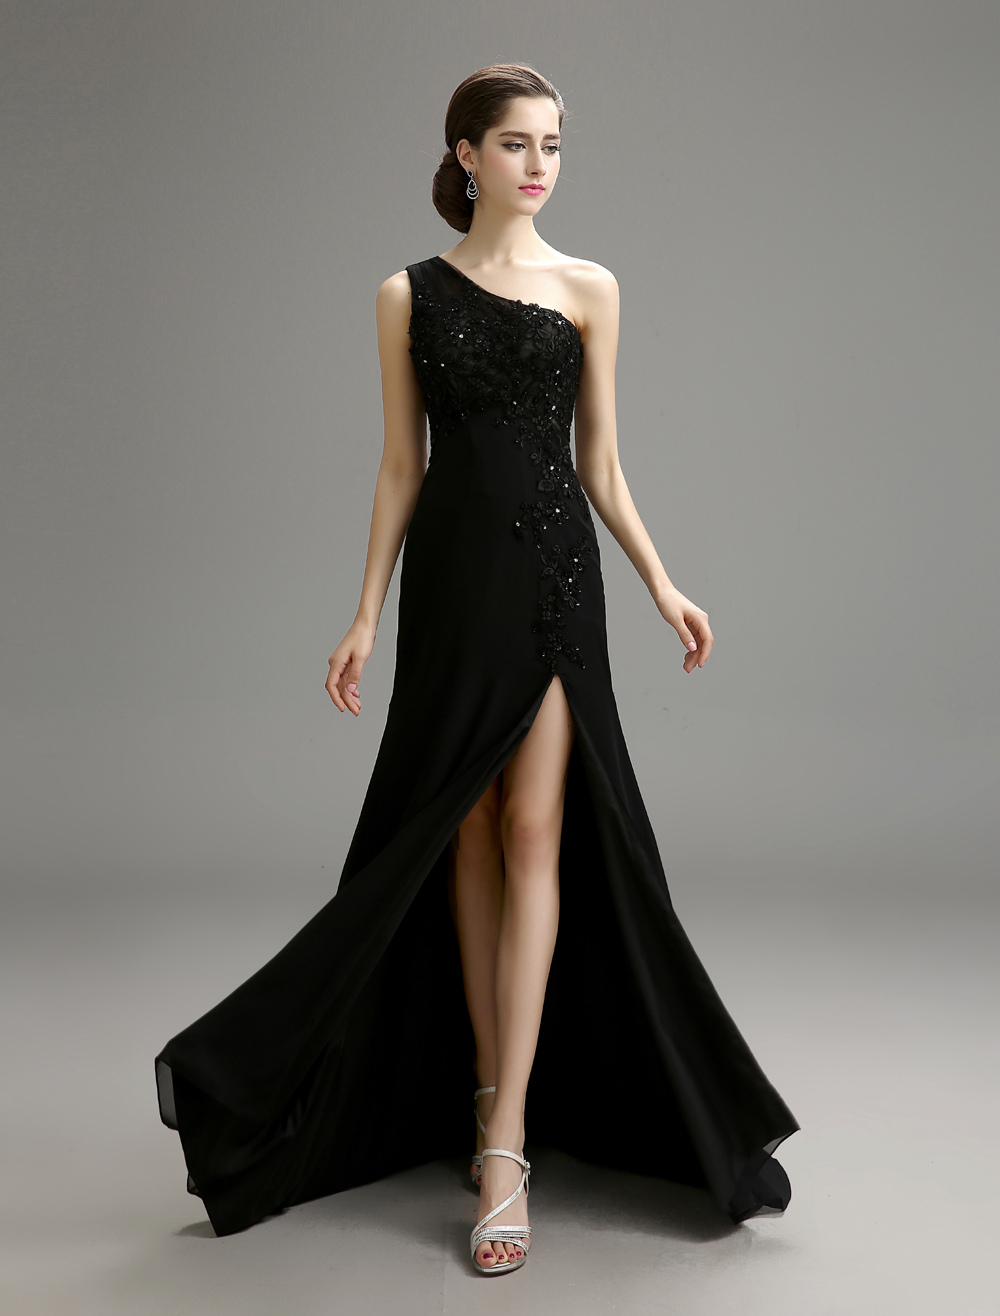 Black Wedding Dress One-Shoulder Chiffon Dress with High Slit Detail